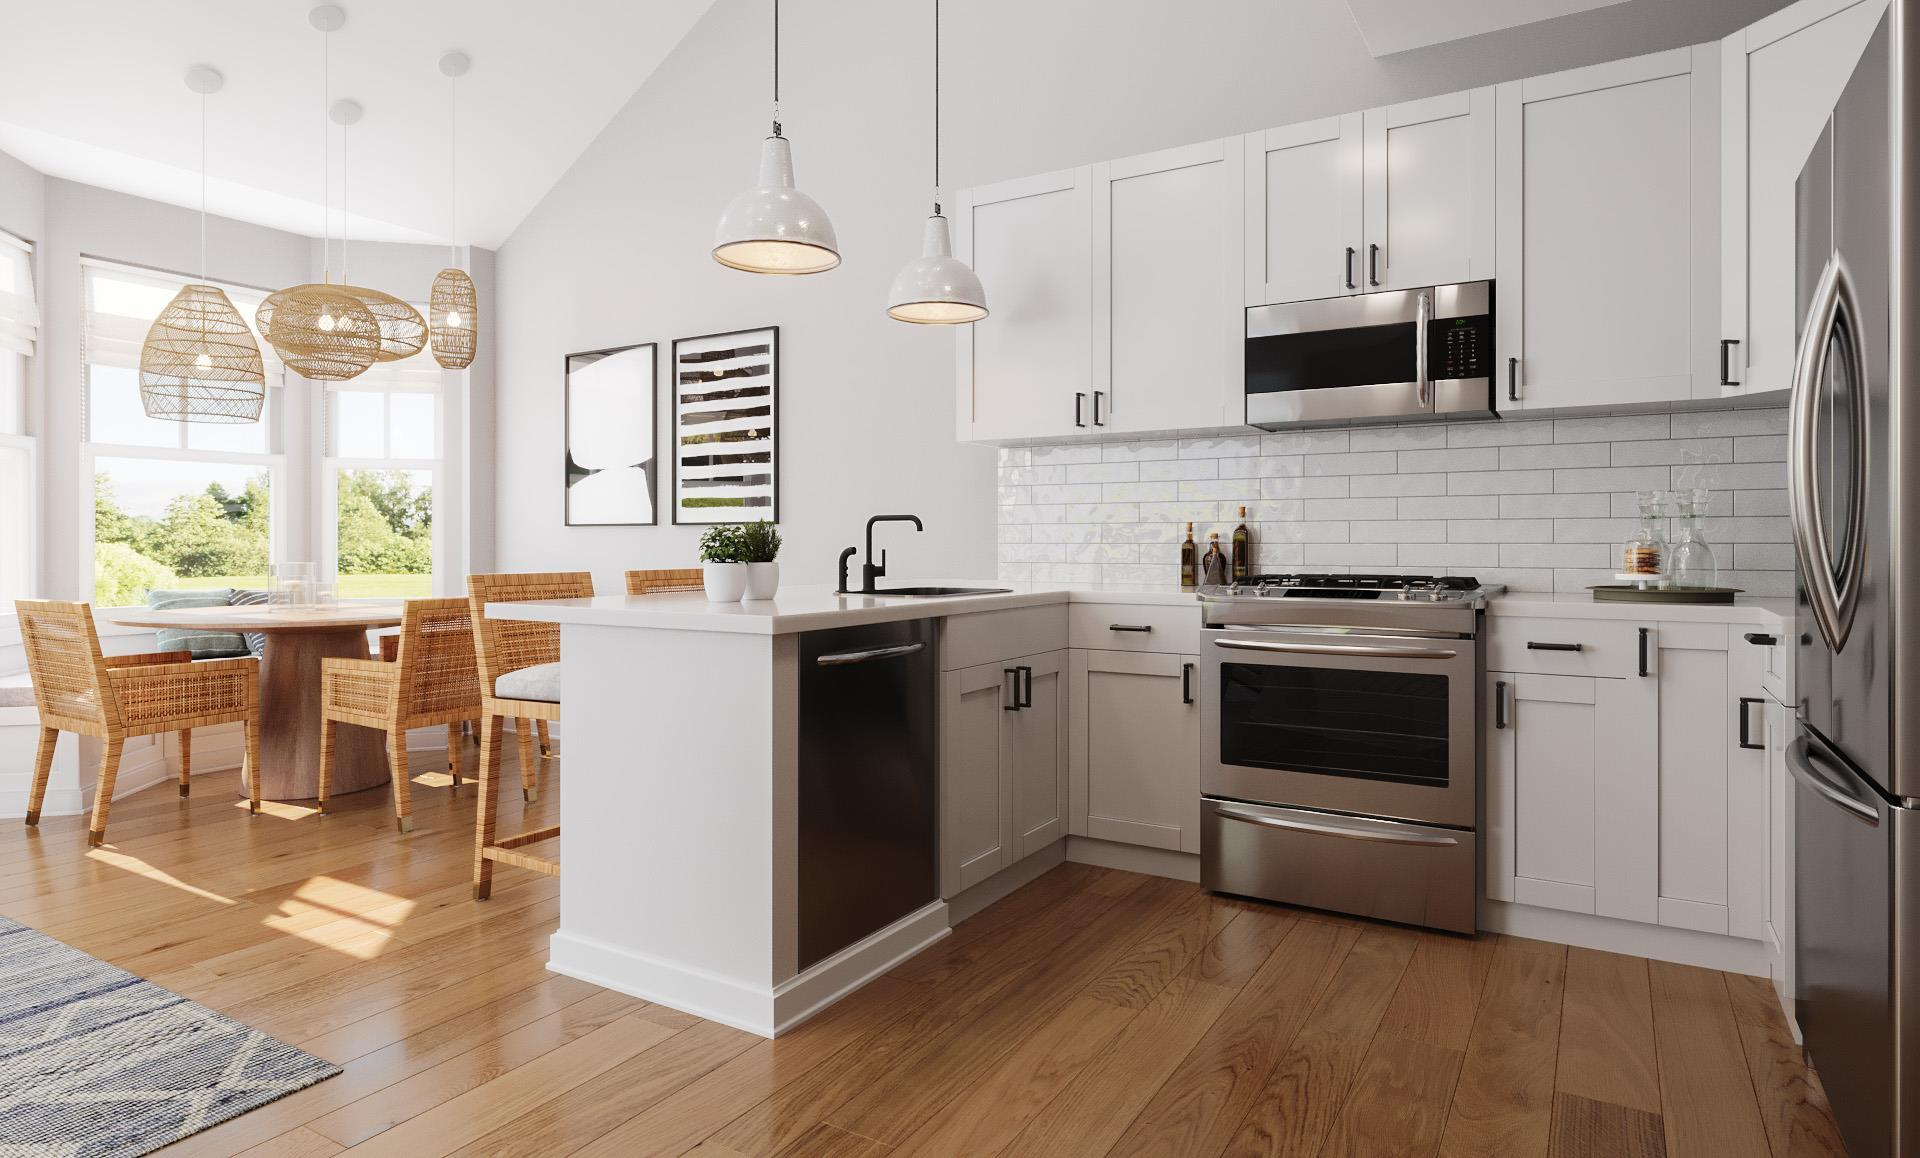 Kitchen featured in The Barrett By Beechwood Homes in Nassau-Suffolk, NY